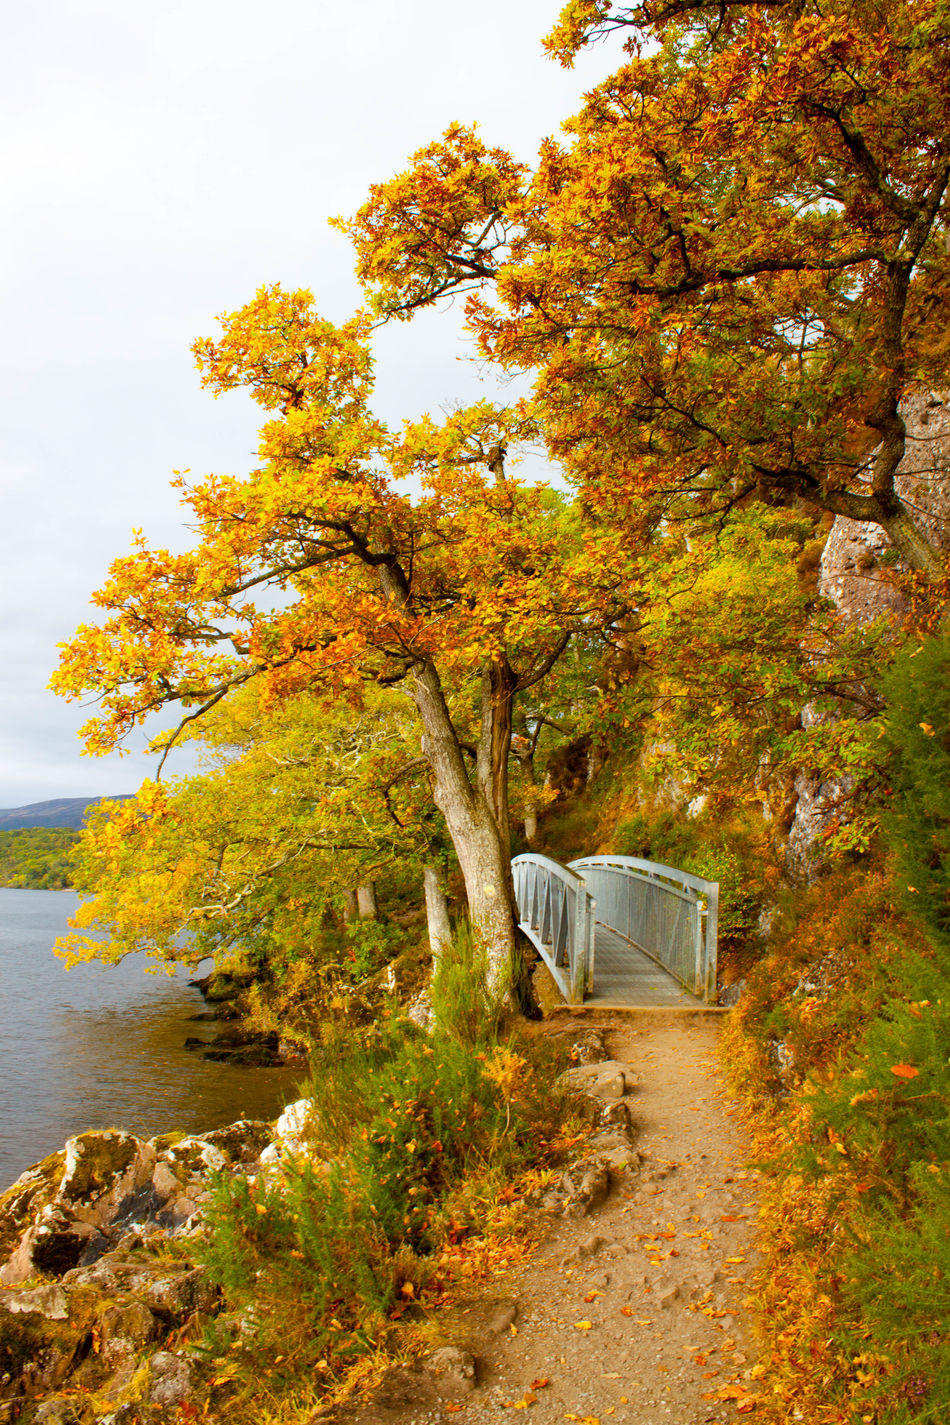 Architecture Autumn Beauty In Nature Branch Change Day Fall Leaf LochLomond Nature No People Outdoors Scenics Scotland Sky Tranquility Tree